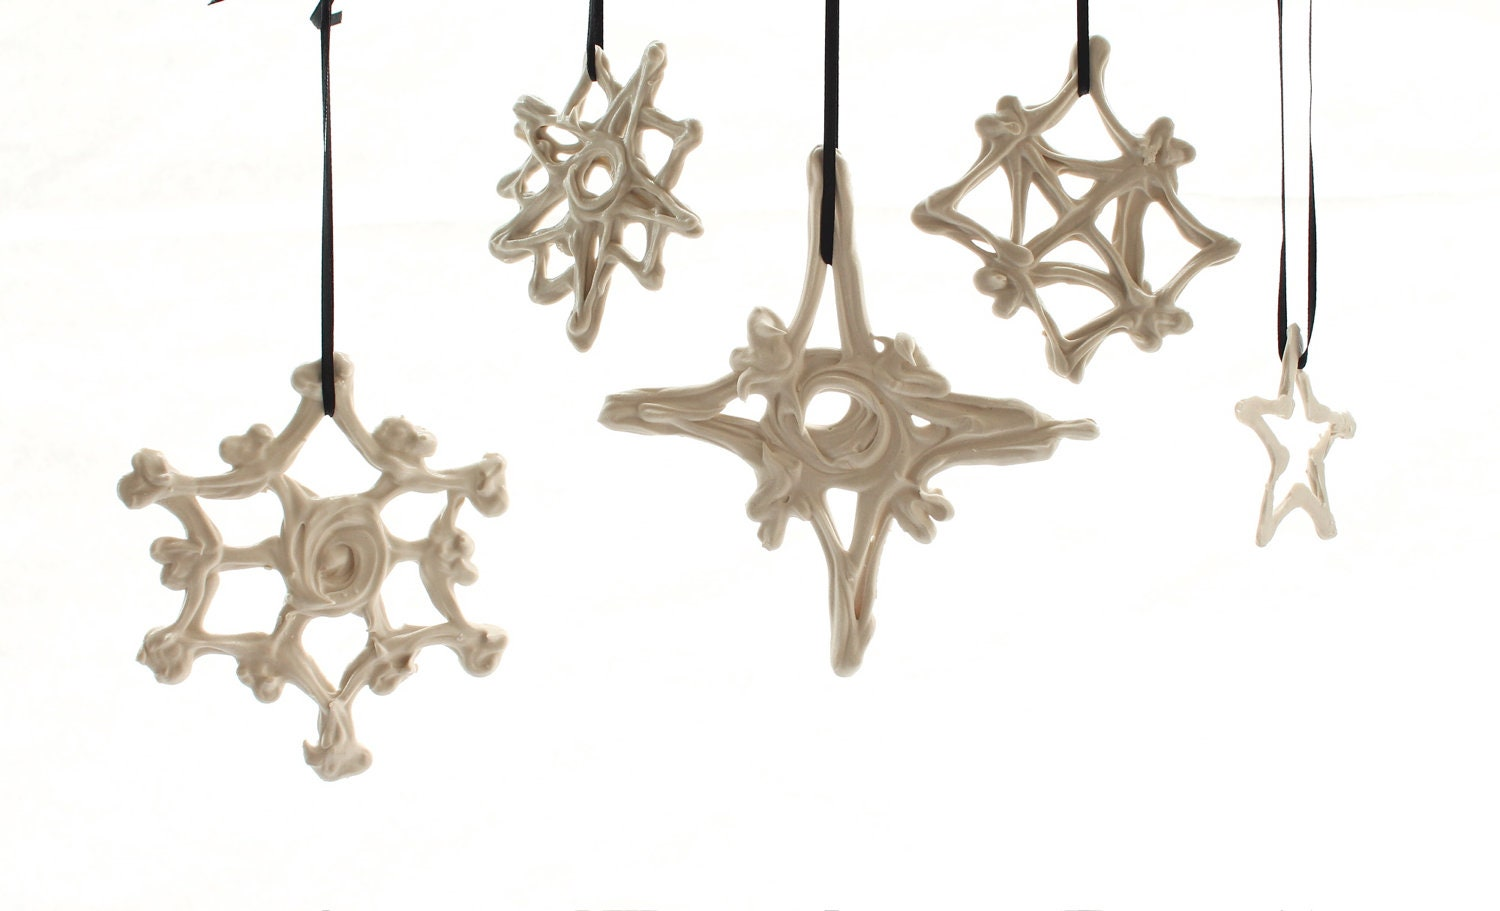 Stars and Snowflakes: Set of 5 Hand-Drawn Porcelain Ornaments - LandMstudio